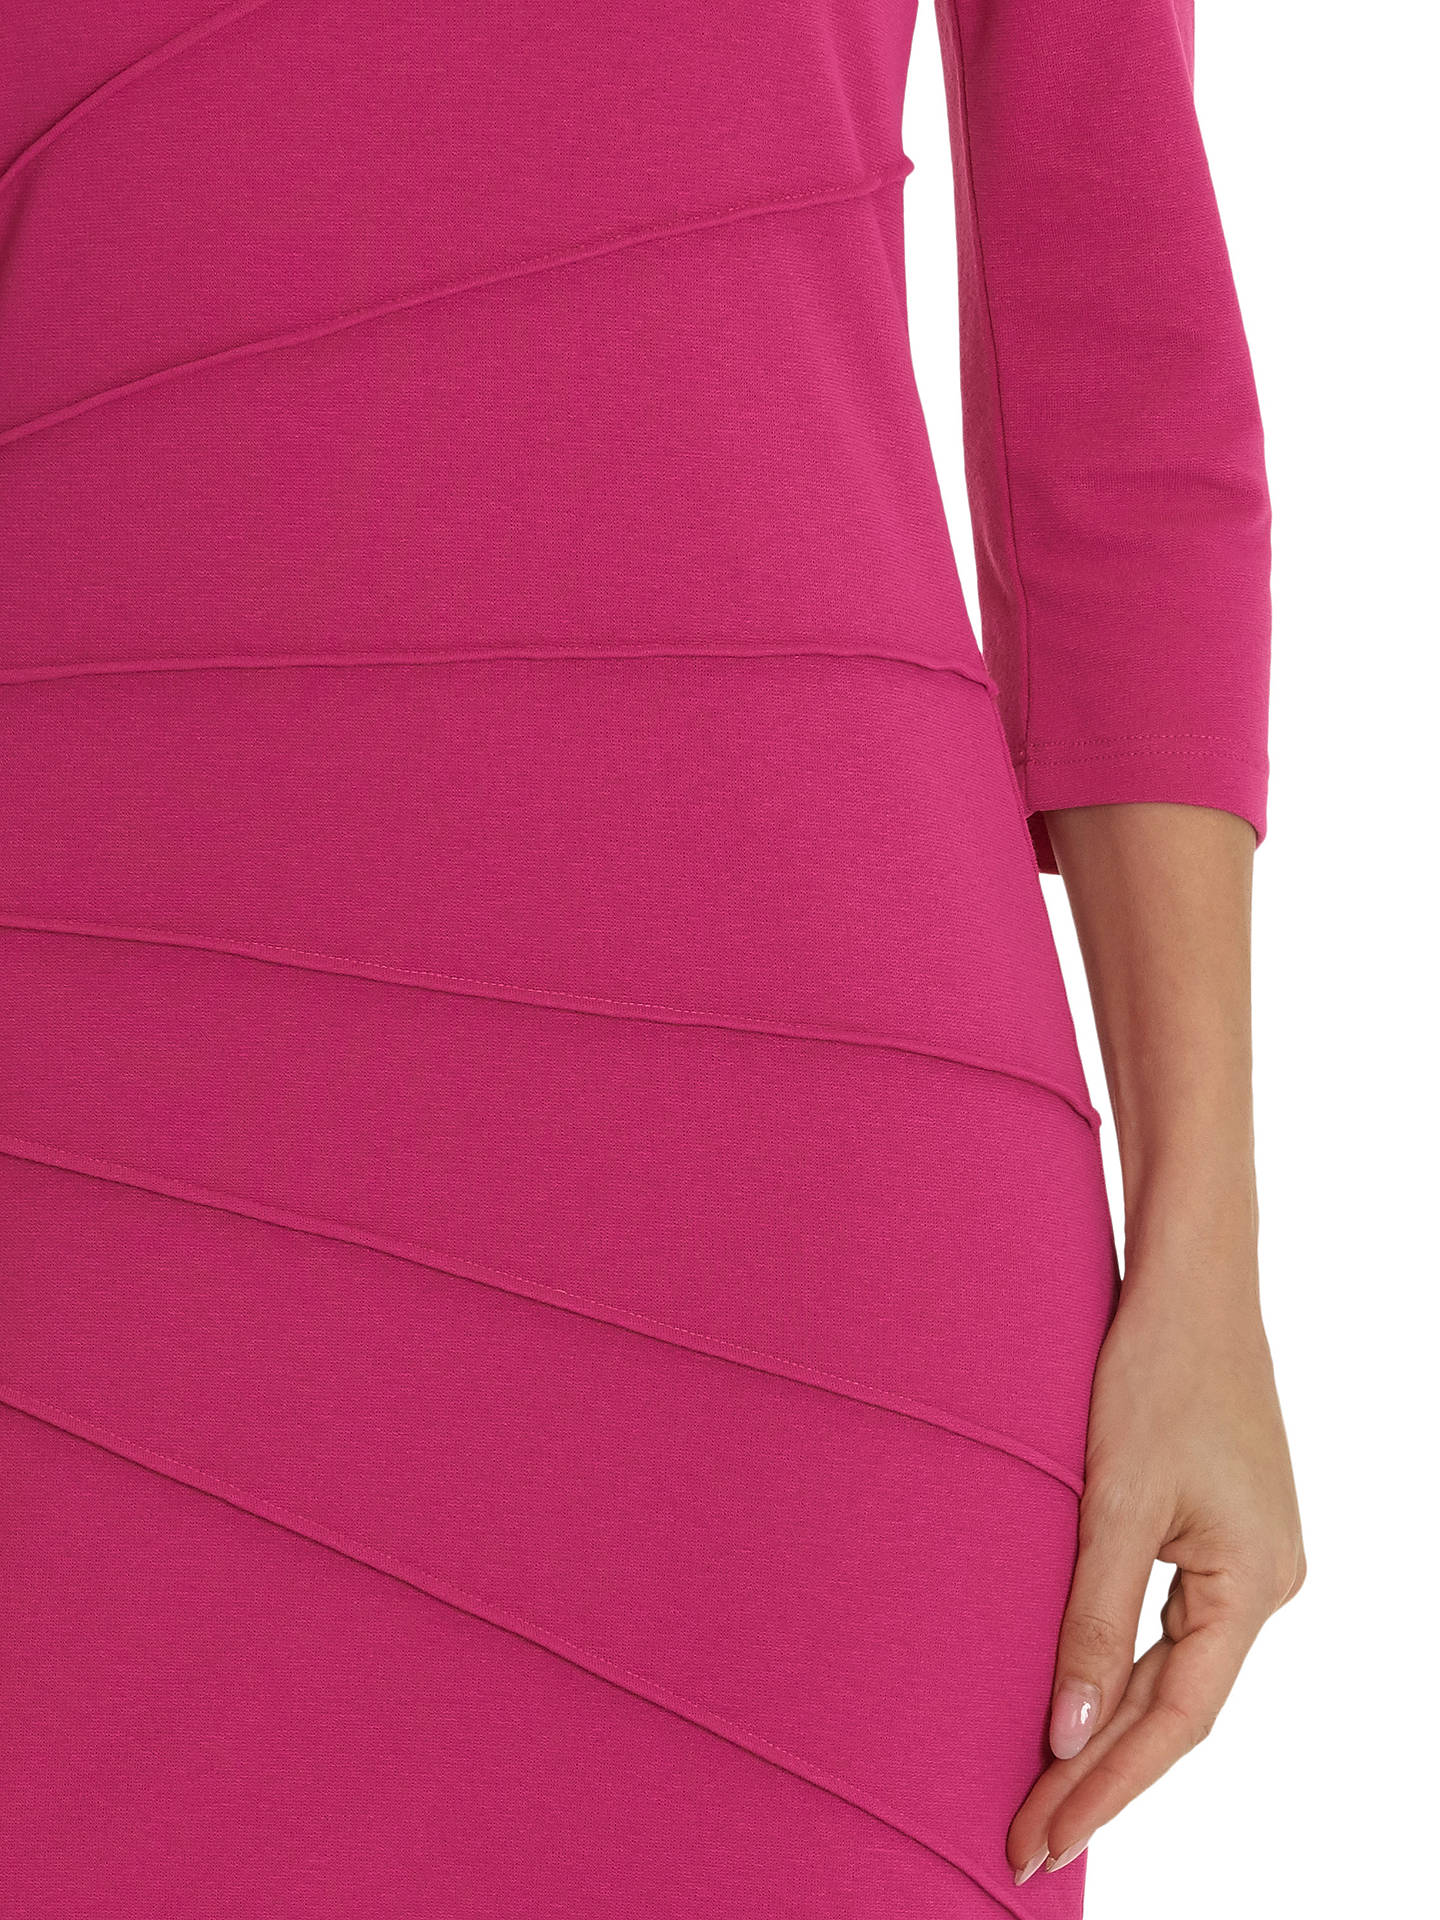 Buy Betty Barclay 3/4 Sleeve Jersey Dress, Fuchsia, 10 Online at johnlewis.com